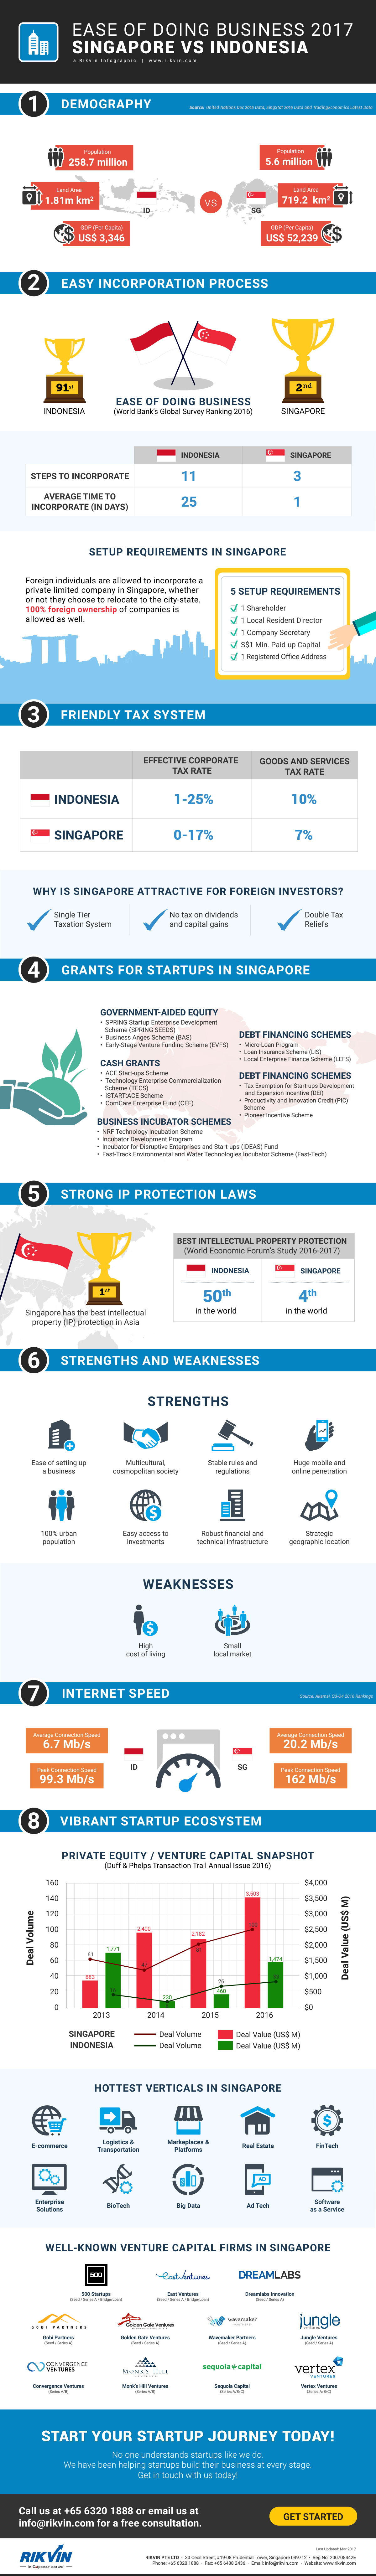 ease-of-doing-business-2017-singapore-vs-indonesia_rikvin-infographic Ease of Doing Business 2017: Singapore vs Indonesia